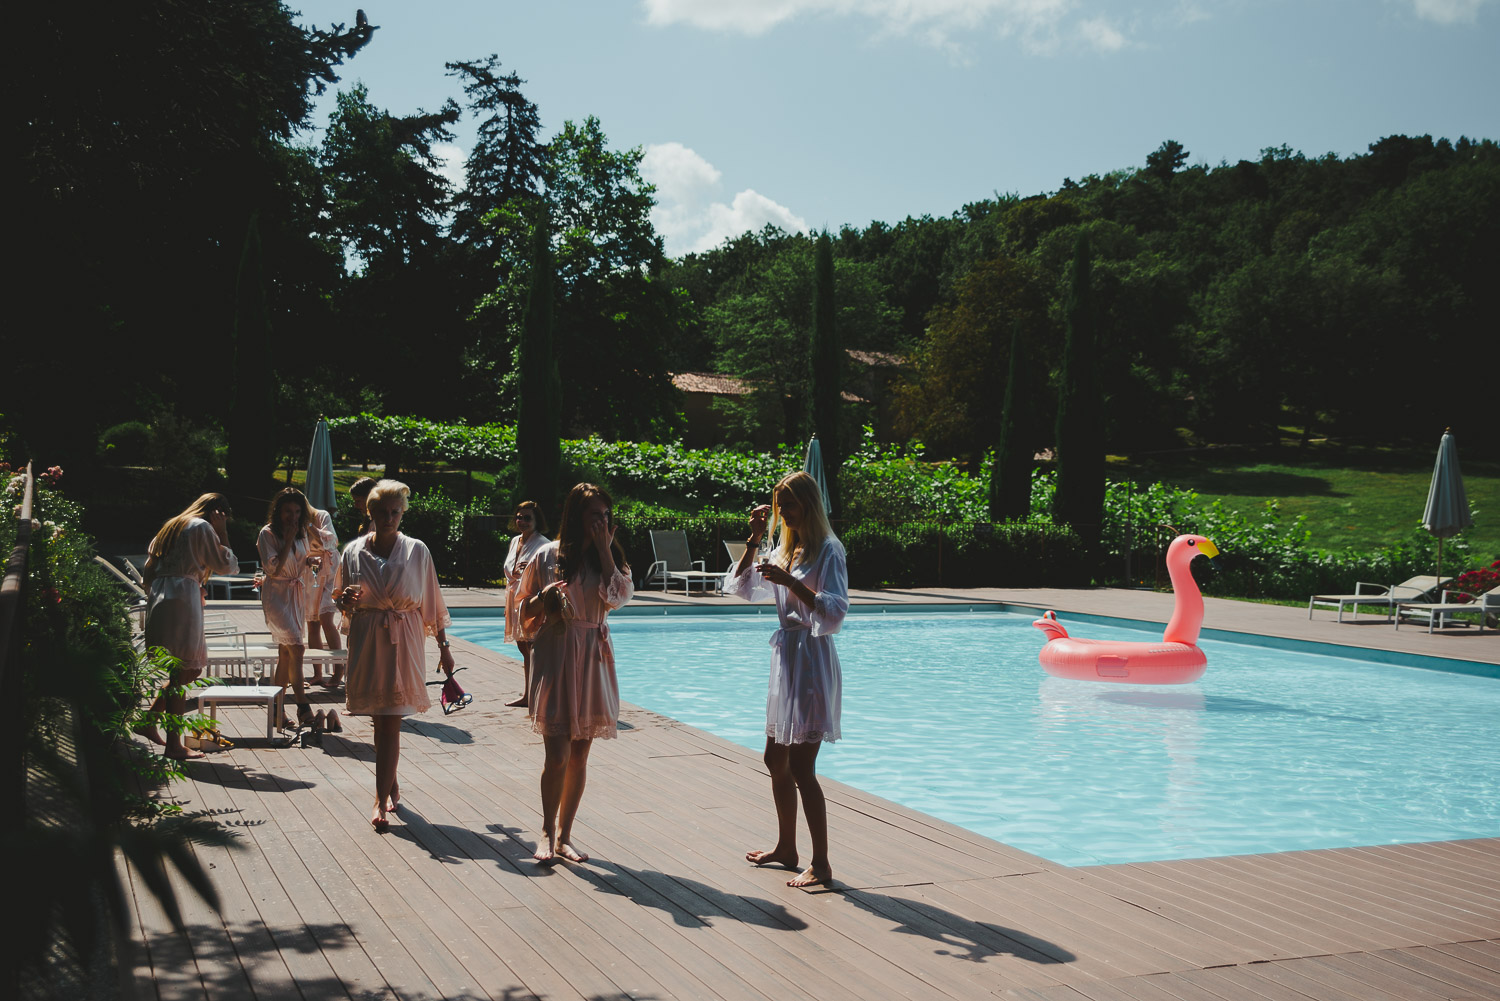 le_castelet_castres_tarn_gascony_south_west_france_family_wedding_katy_webb_photography_UK17